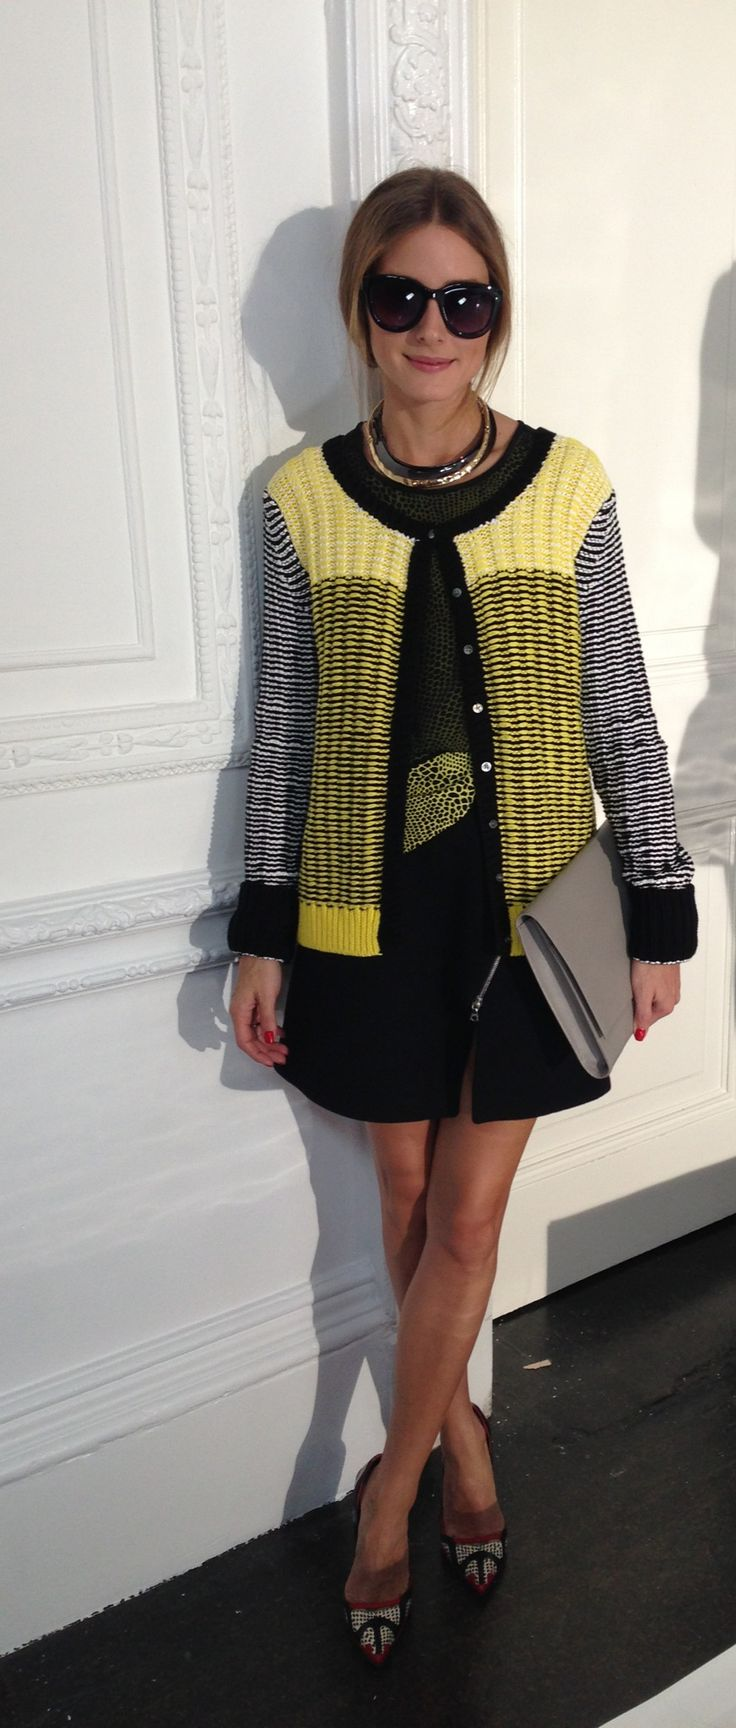 Olivia Palermo at LFW 2013 Markus Lupfer's presentation wearing a Markus Lupfer Skirt and Sweater and top by Tibi.  Accessories: sunglasses are Witchery and clutch is by Smythson.